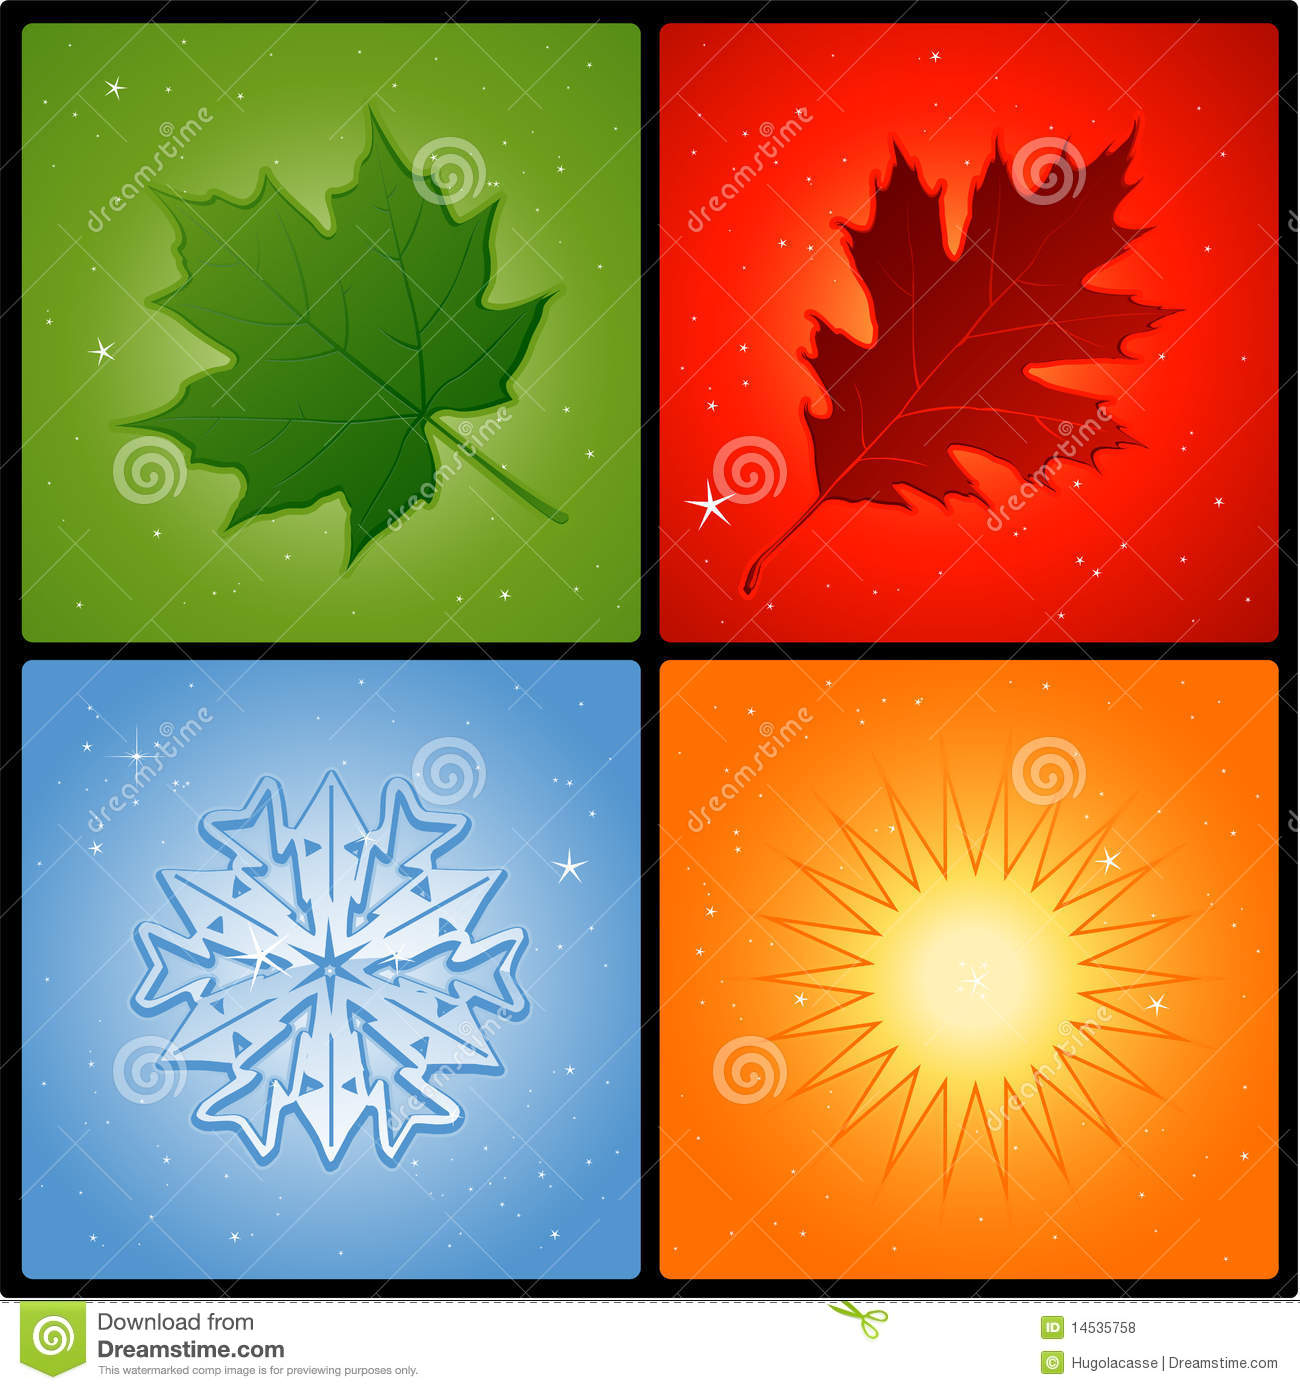 Four Seasons Royalty Free Stock Photos - Image: 14535758